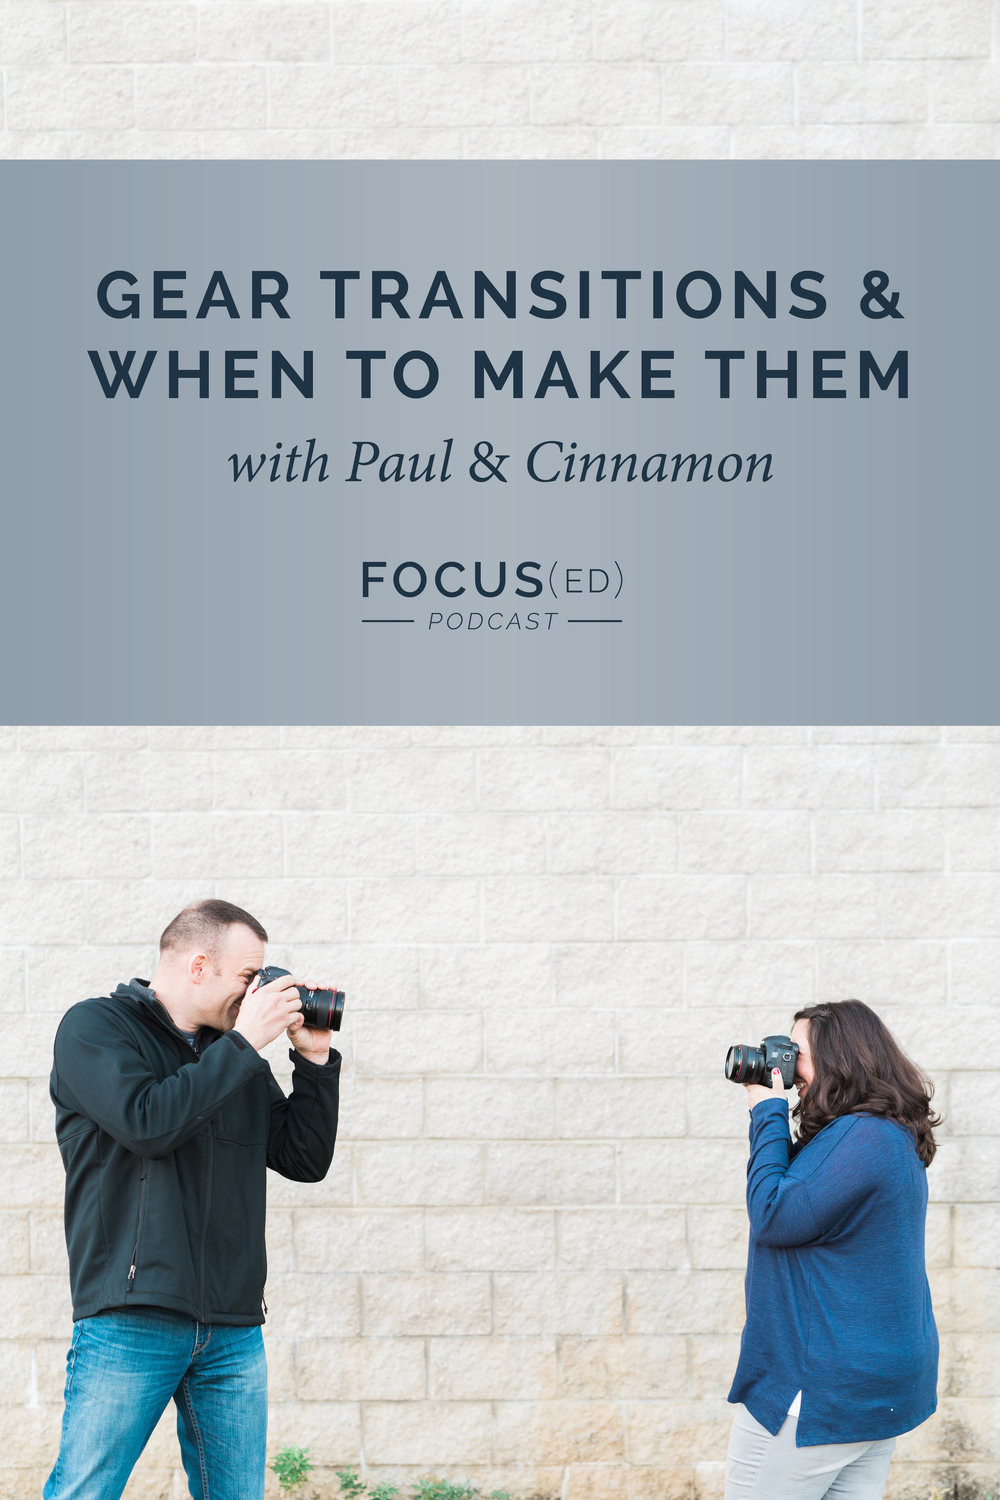 When to make gear transitions in a photography business | What gear do I buy first as a photographer?